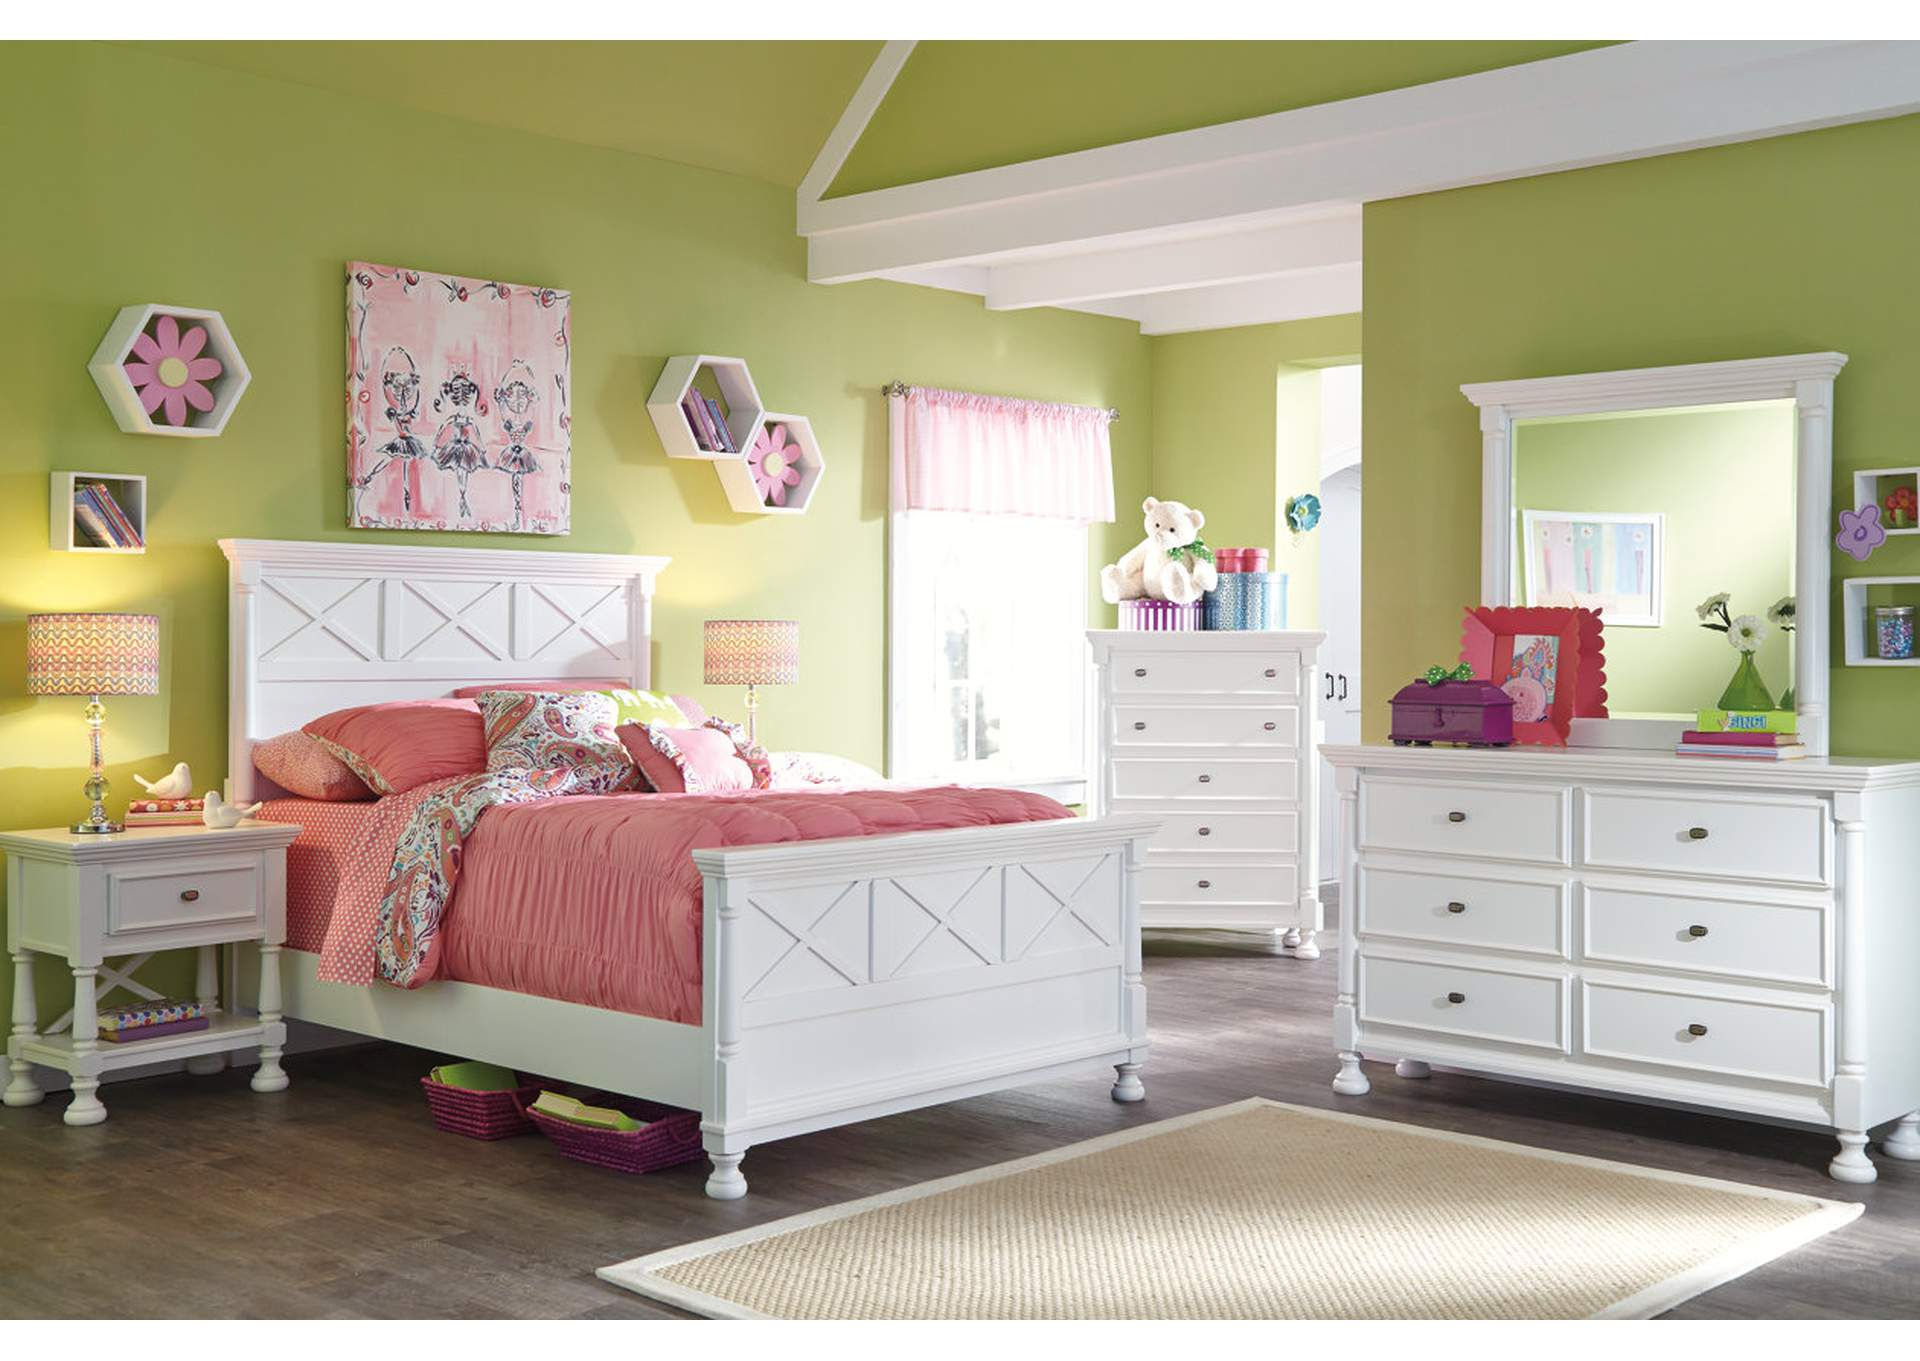 Kaslyn Queen Panel Bed w/Dresser, Mirror & Chest,Signature Design By Ashley